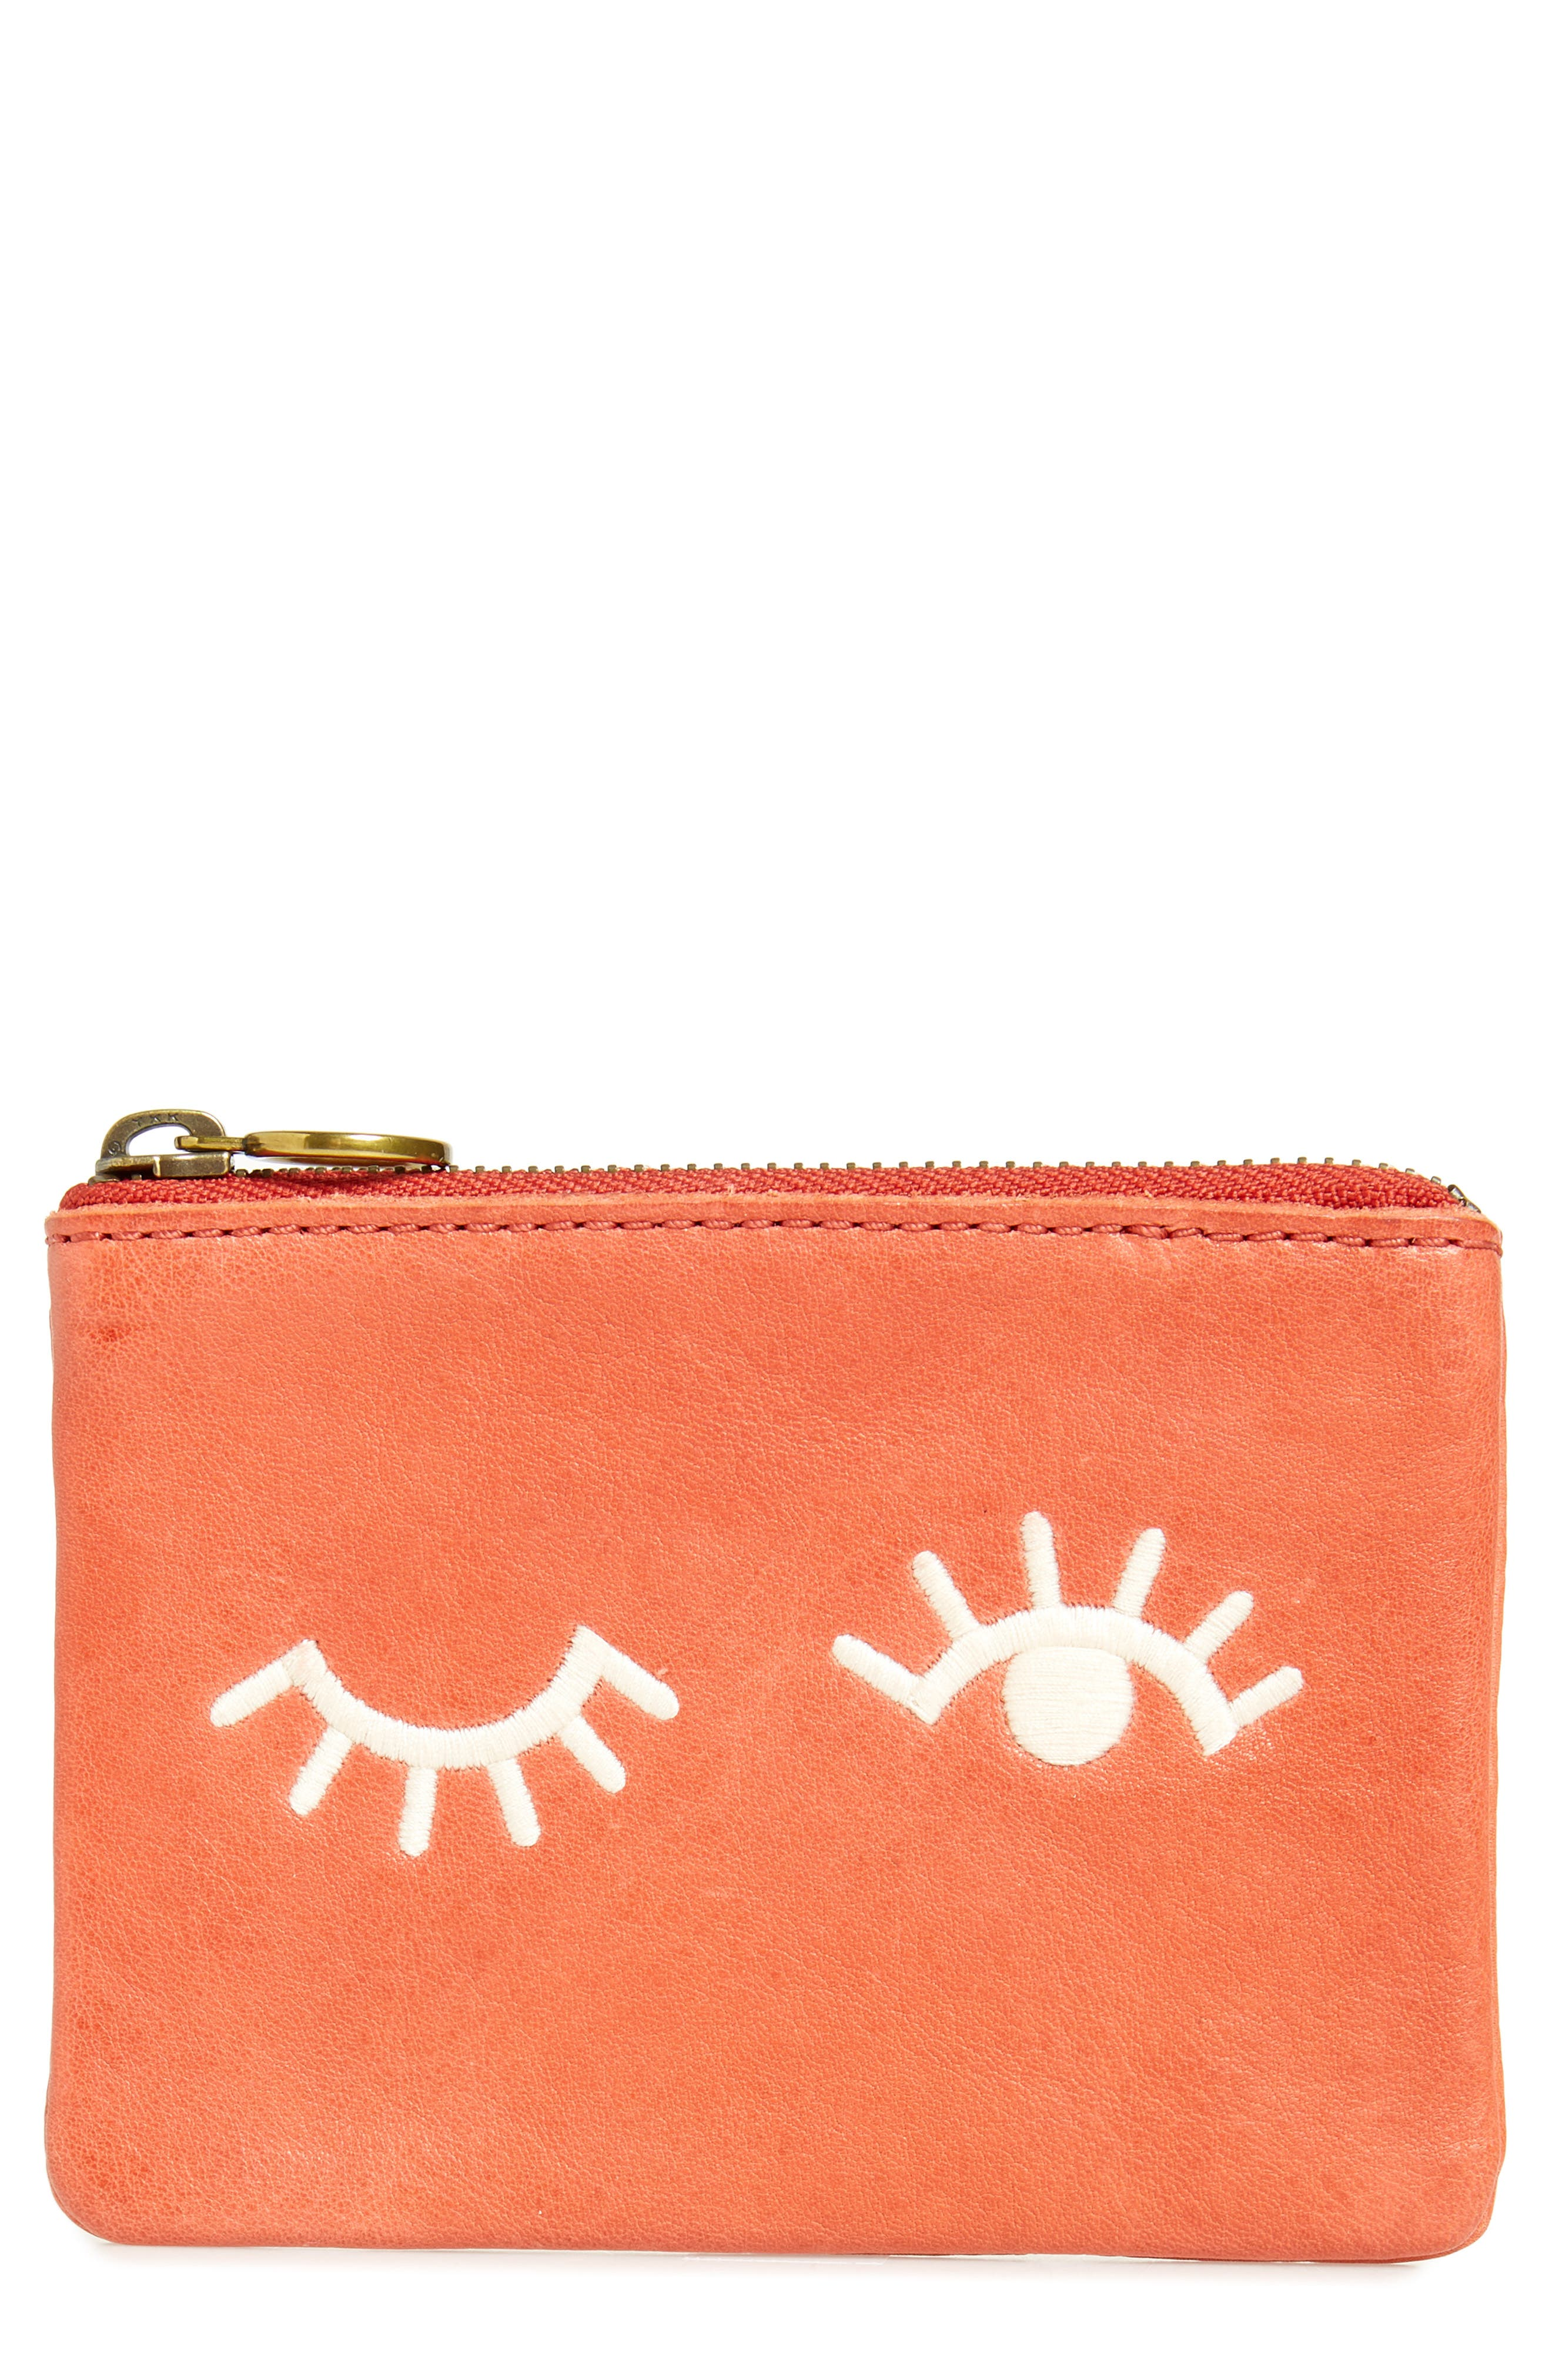 Eye Embroidered Leather Zip Pouch,                             Main thumbnail 1, color,                             600